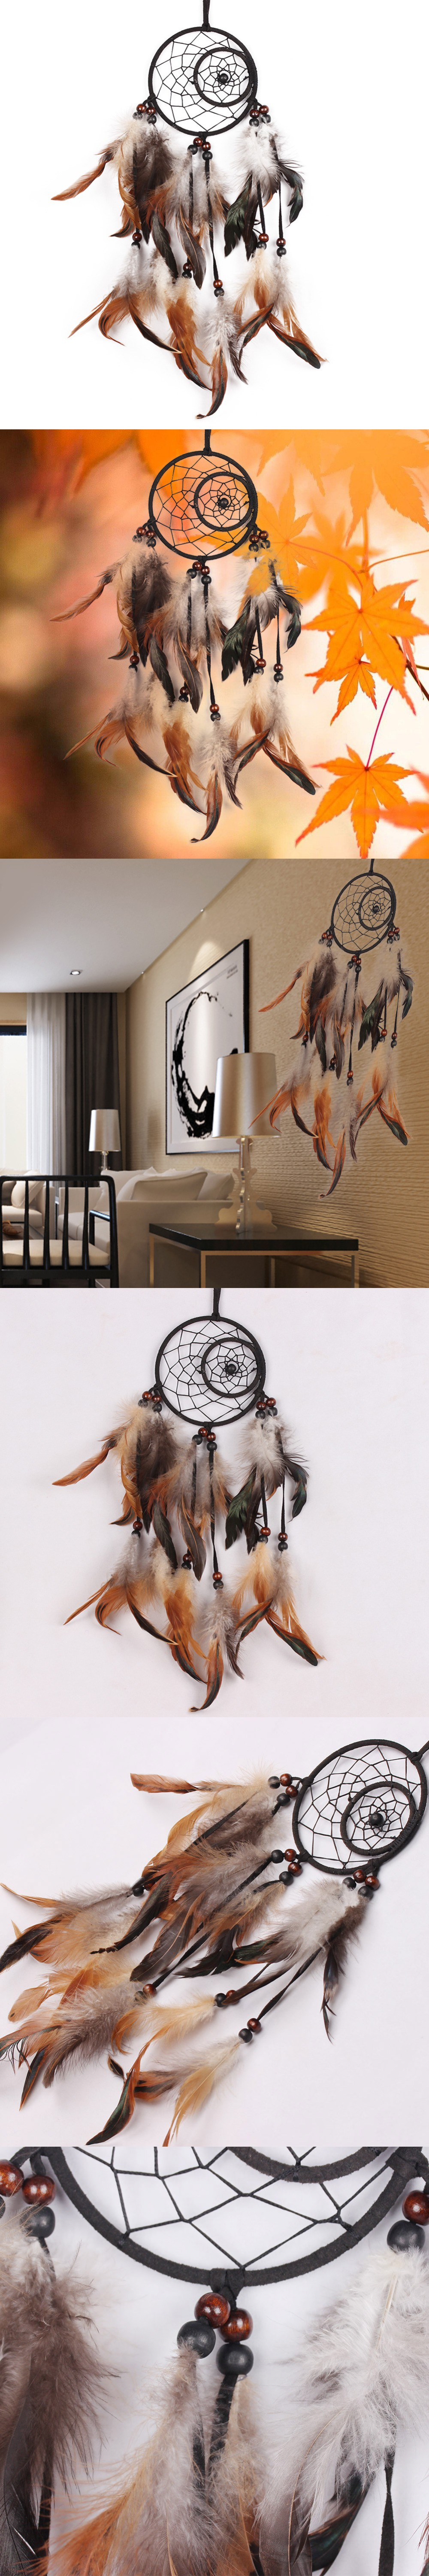 Black Handmade Indian Dream Catcher with Feathers Car Wall Hanging ... for Indian Hanging Decorations  55nar